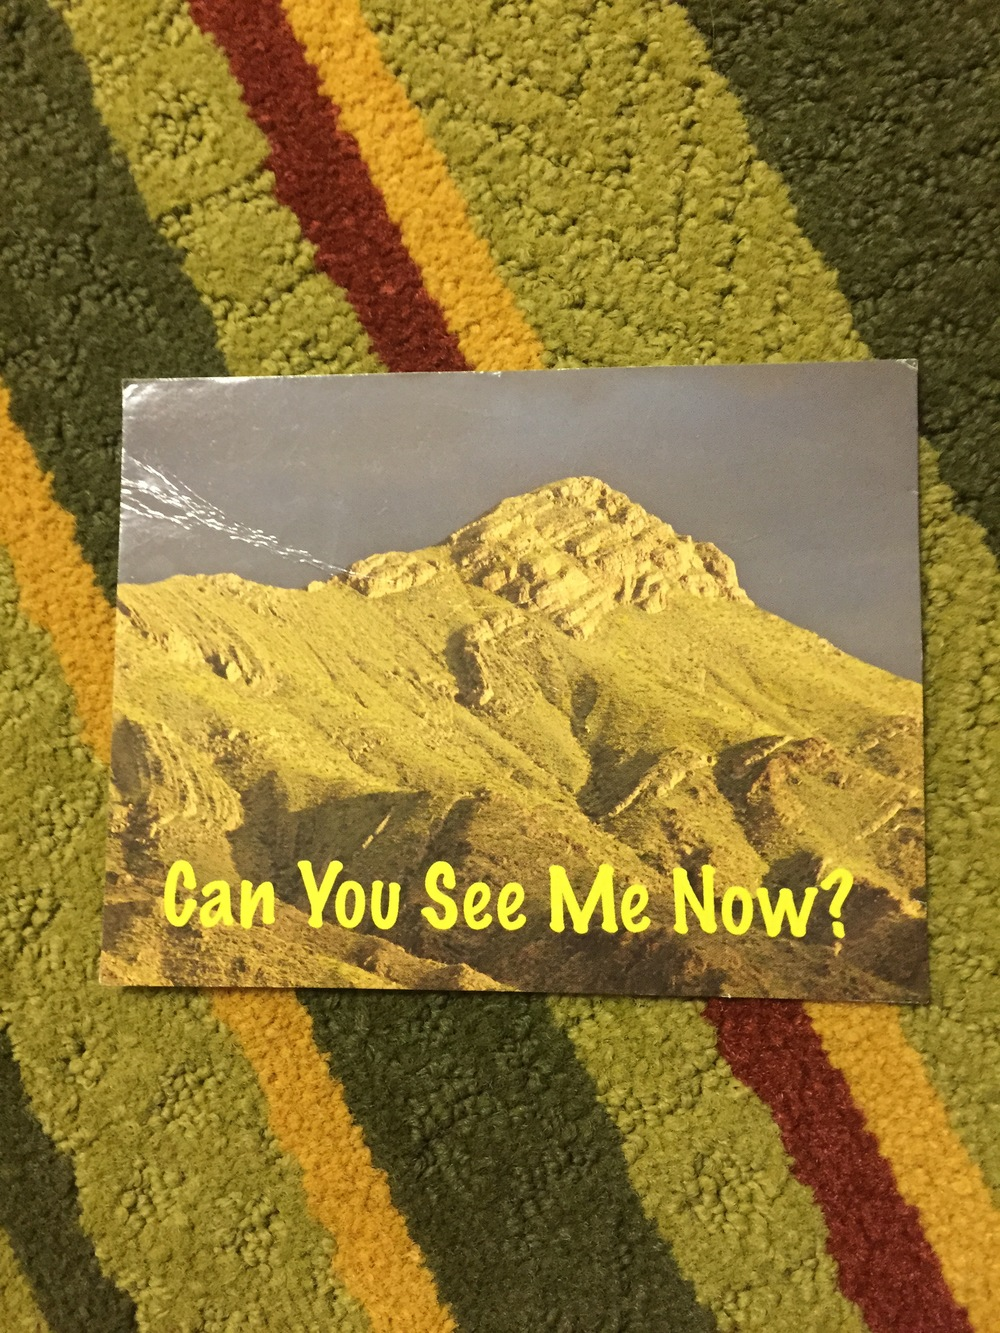 Okay, guys. We actually SAW Turtleback Mountain and we still have NOT A CLUE as to what this postcard means.